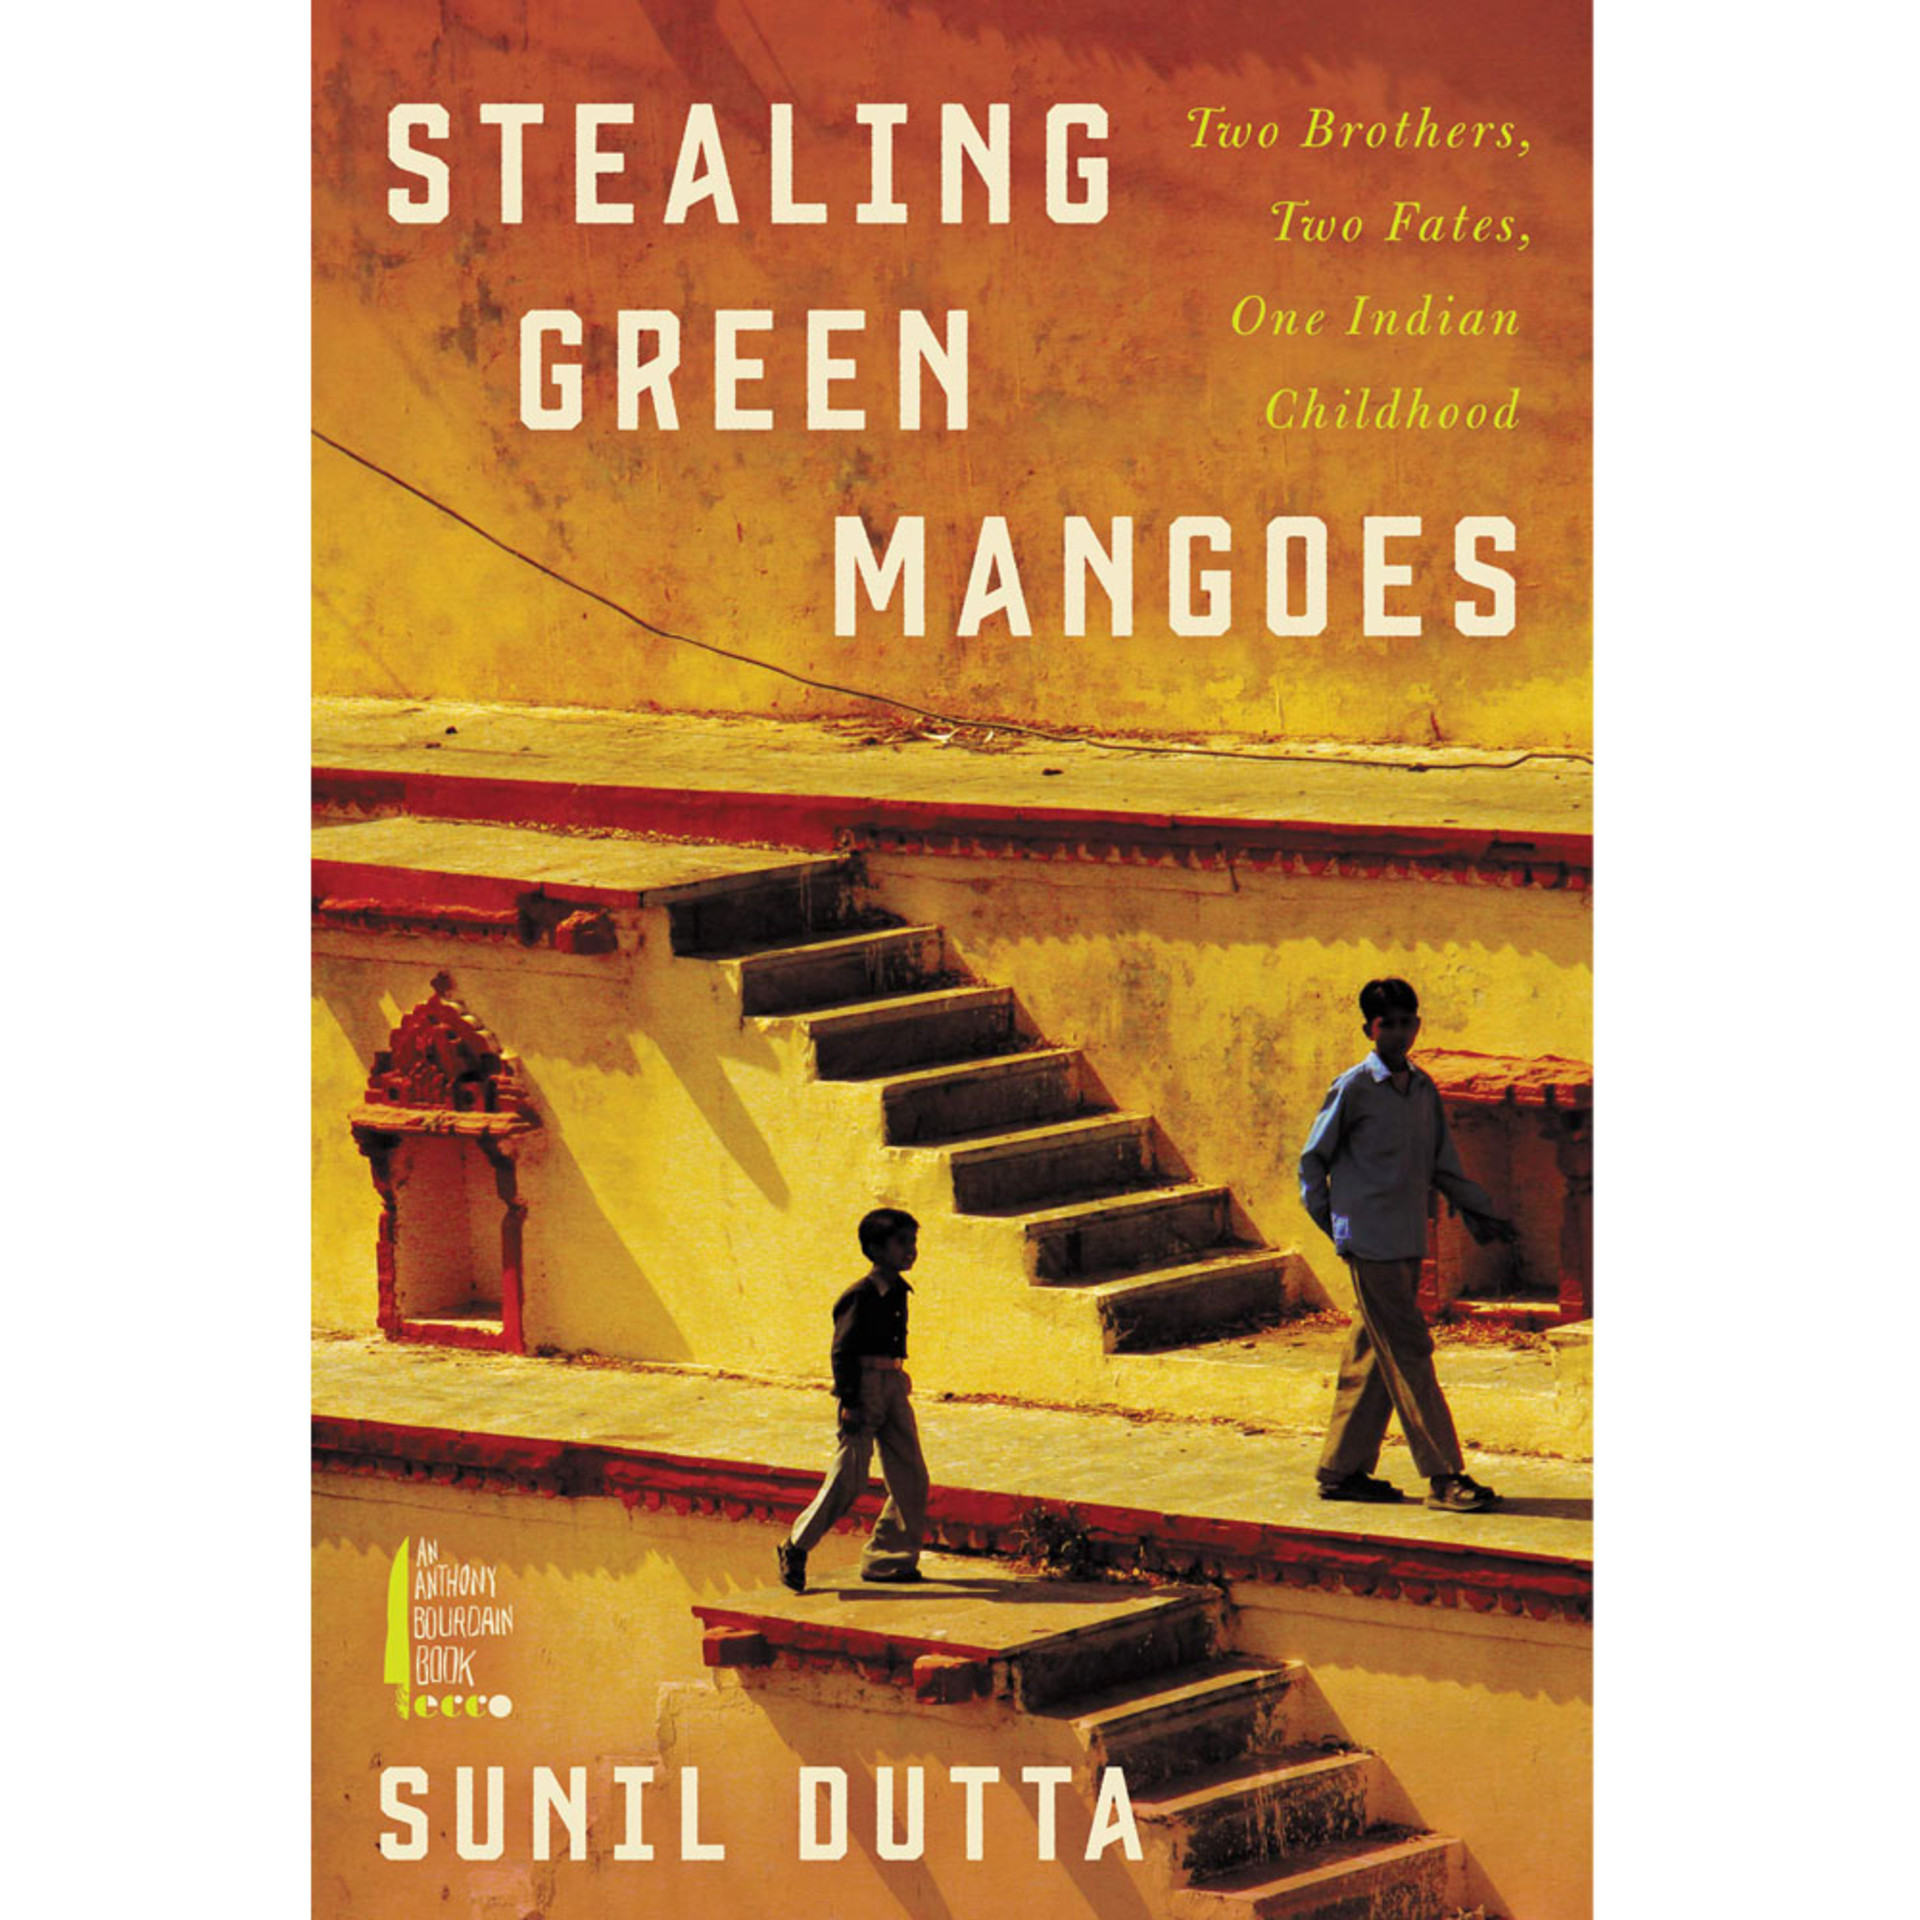 Stealing Green Mangoes: Two Brothers, Two Fates, One Indian Childhood by Sunil Dutta